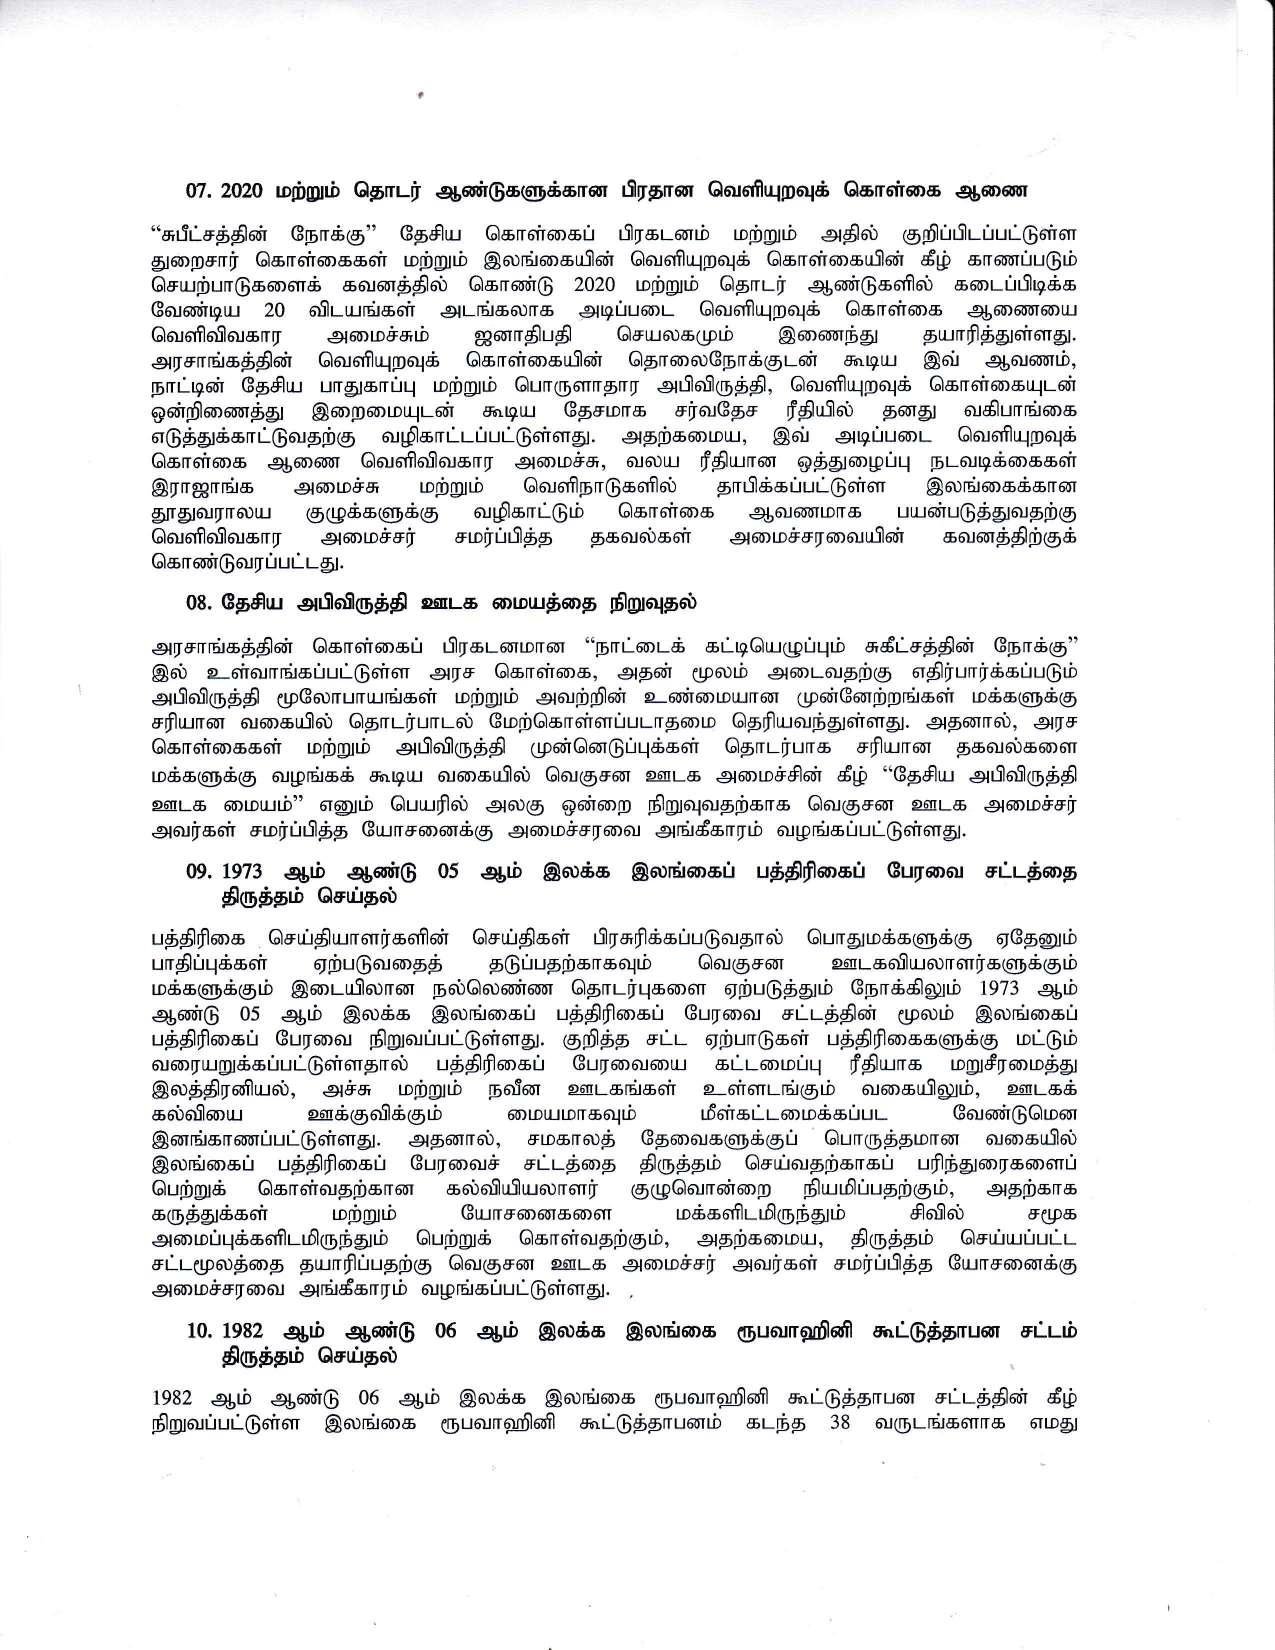 Cabinet Decision on 04.01.2021 Tamil page 003